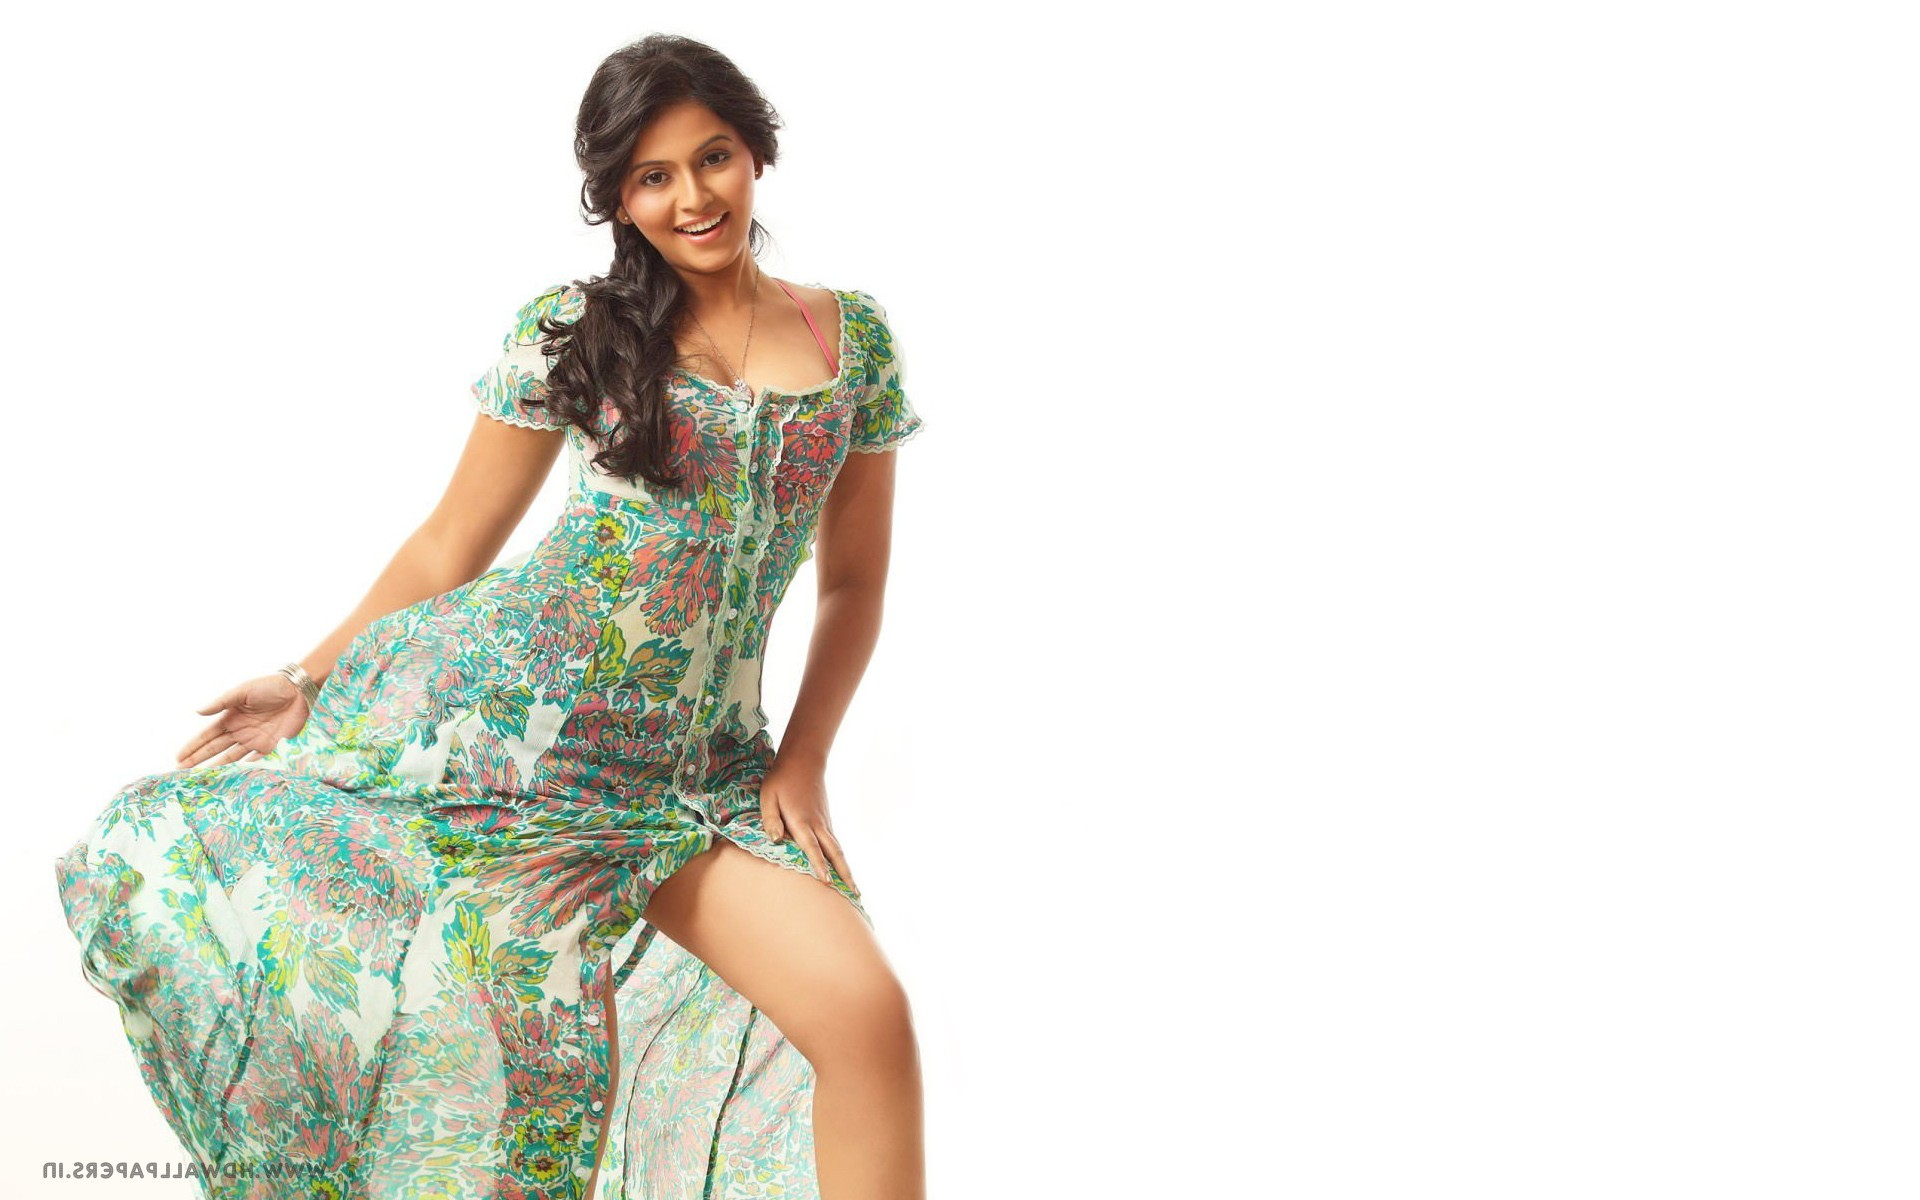 Download Anjali HD wallpaper in laptop and desktop